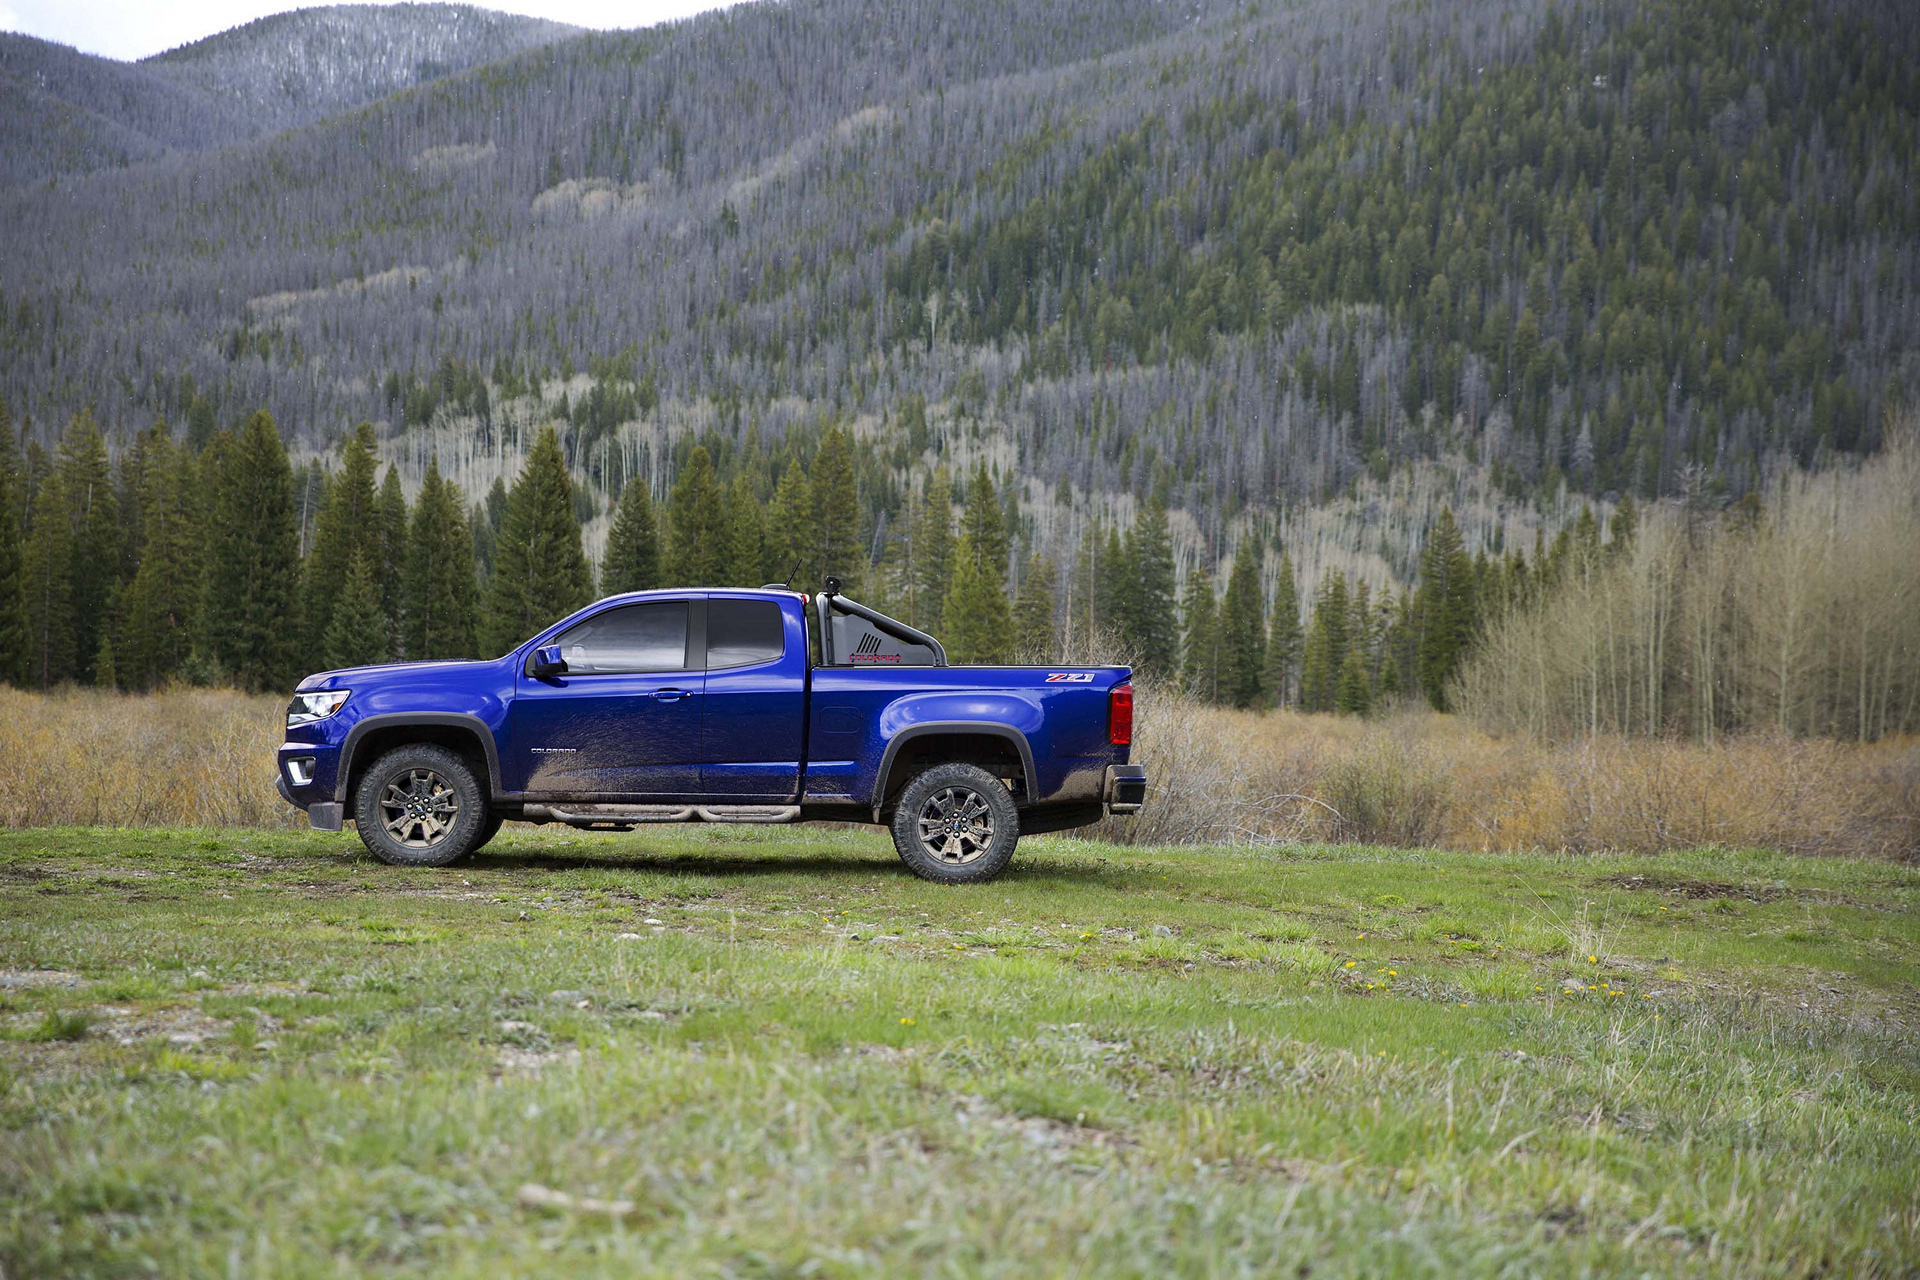 2016 Chevrolet Colorado Trail Boss © General Motors